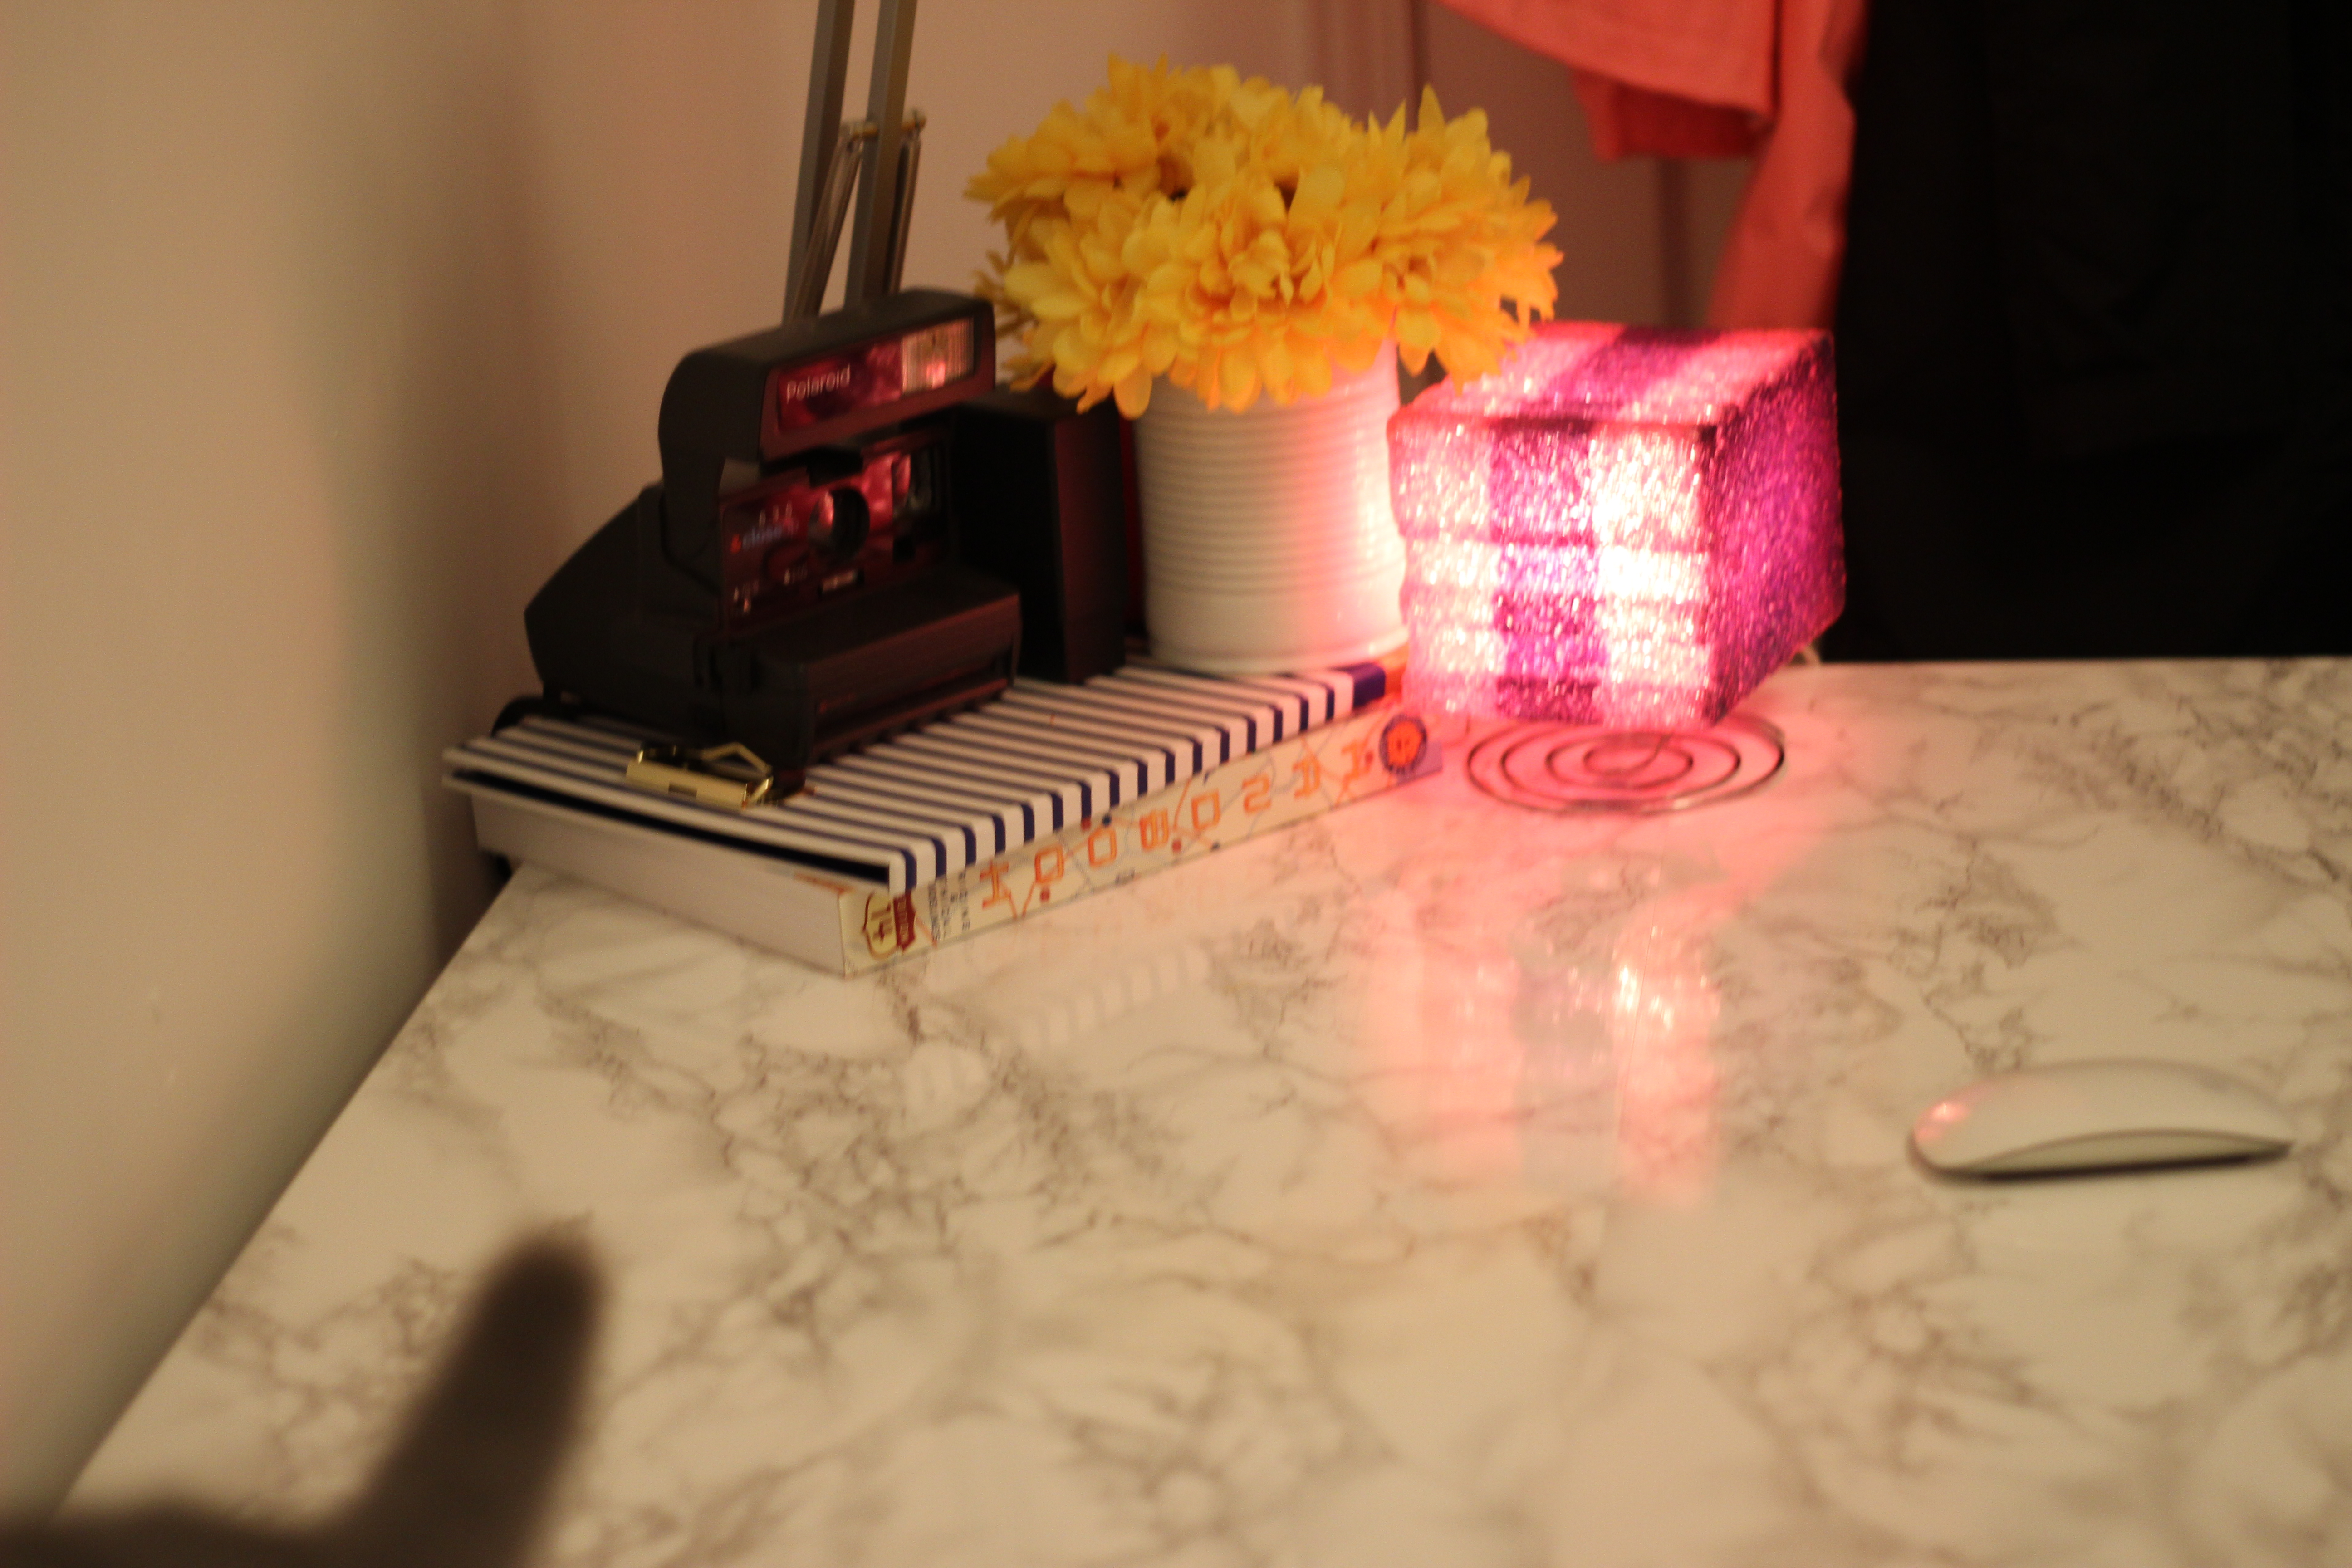 a marble desk with a stack of books, a polaroid camera, lights and flowers